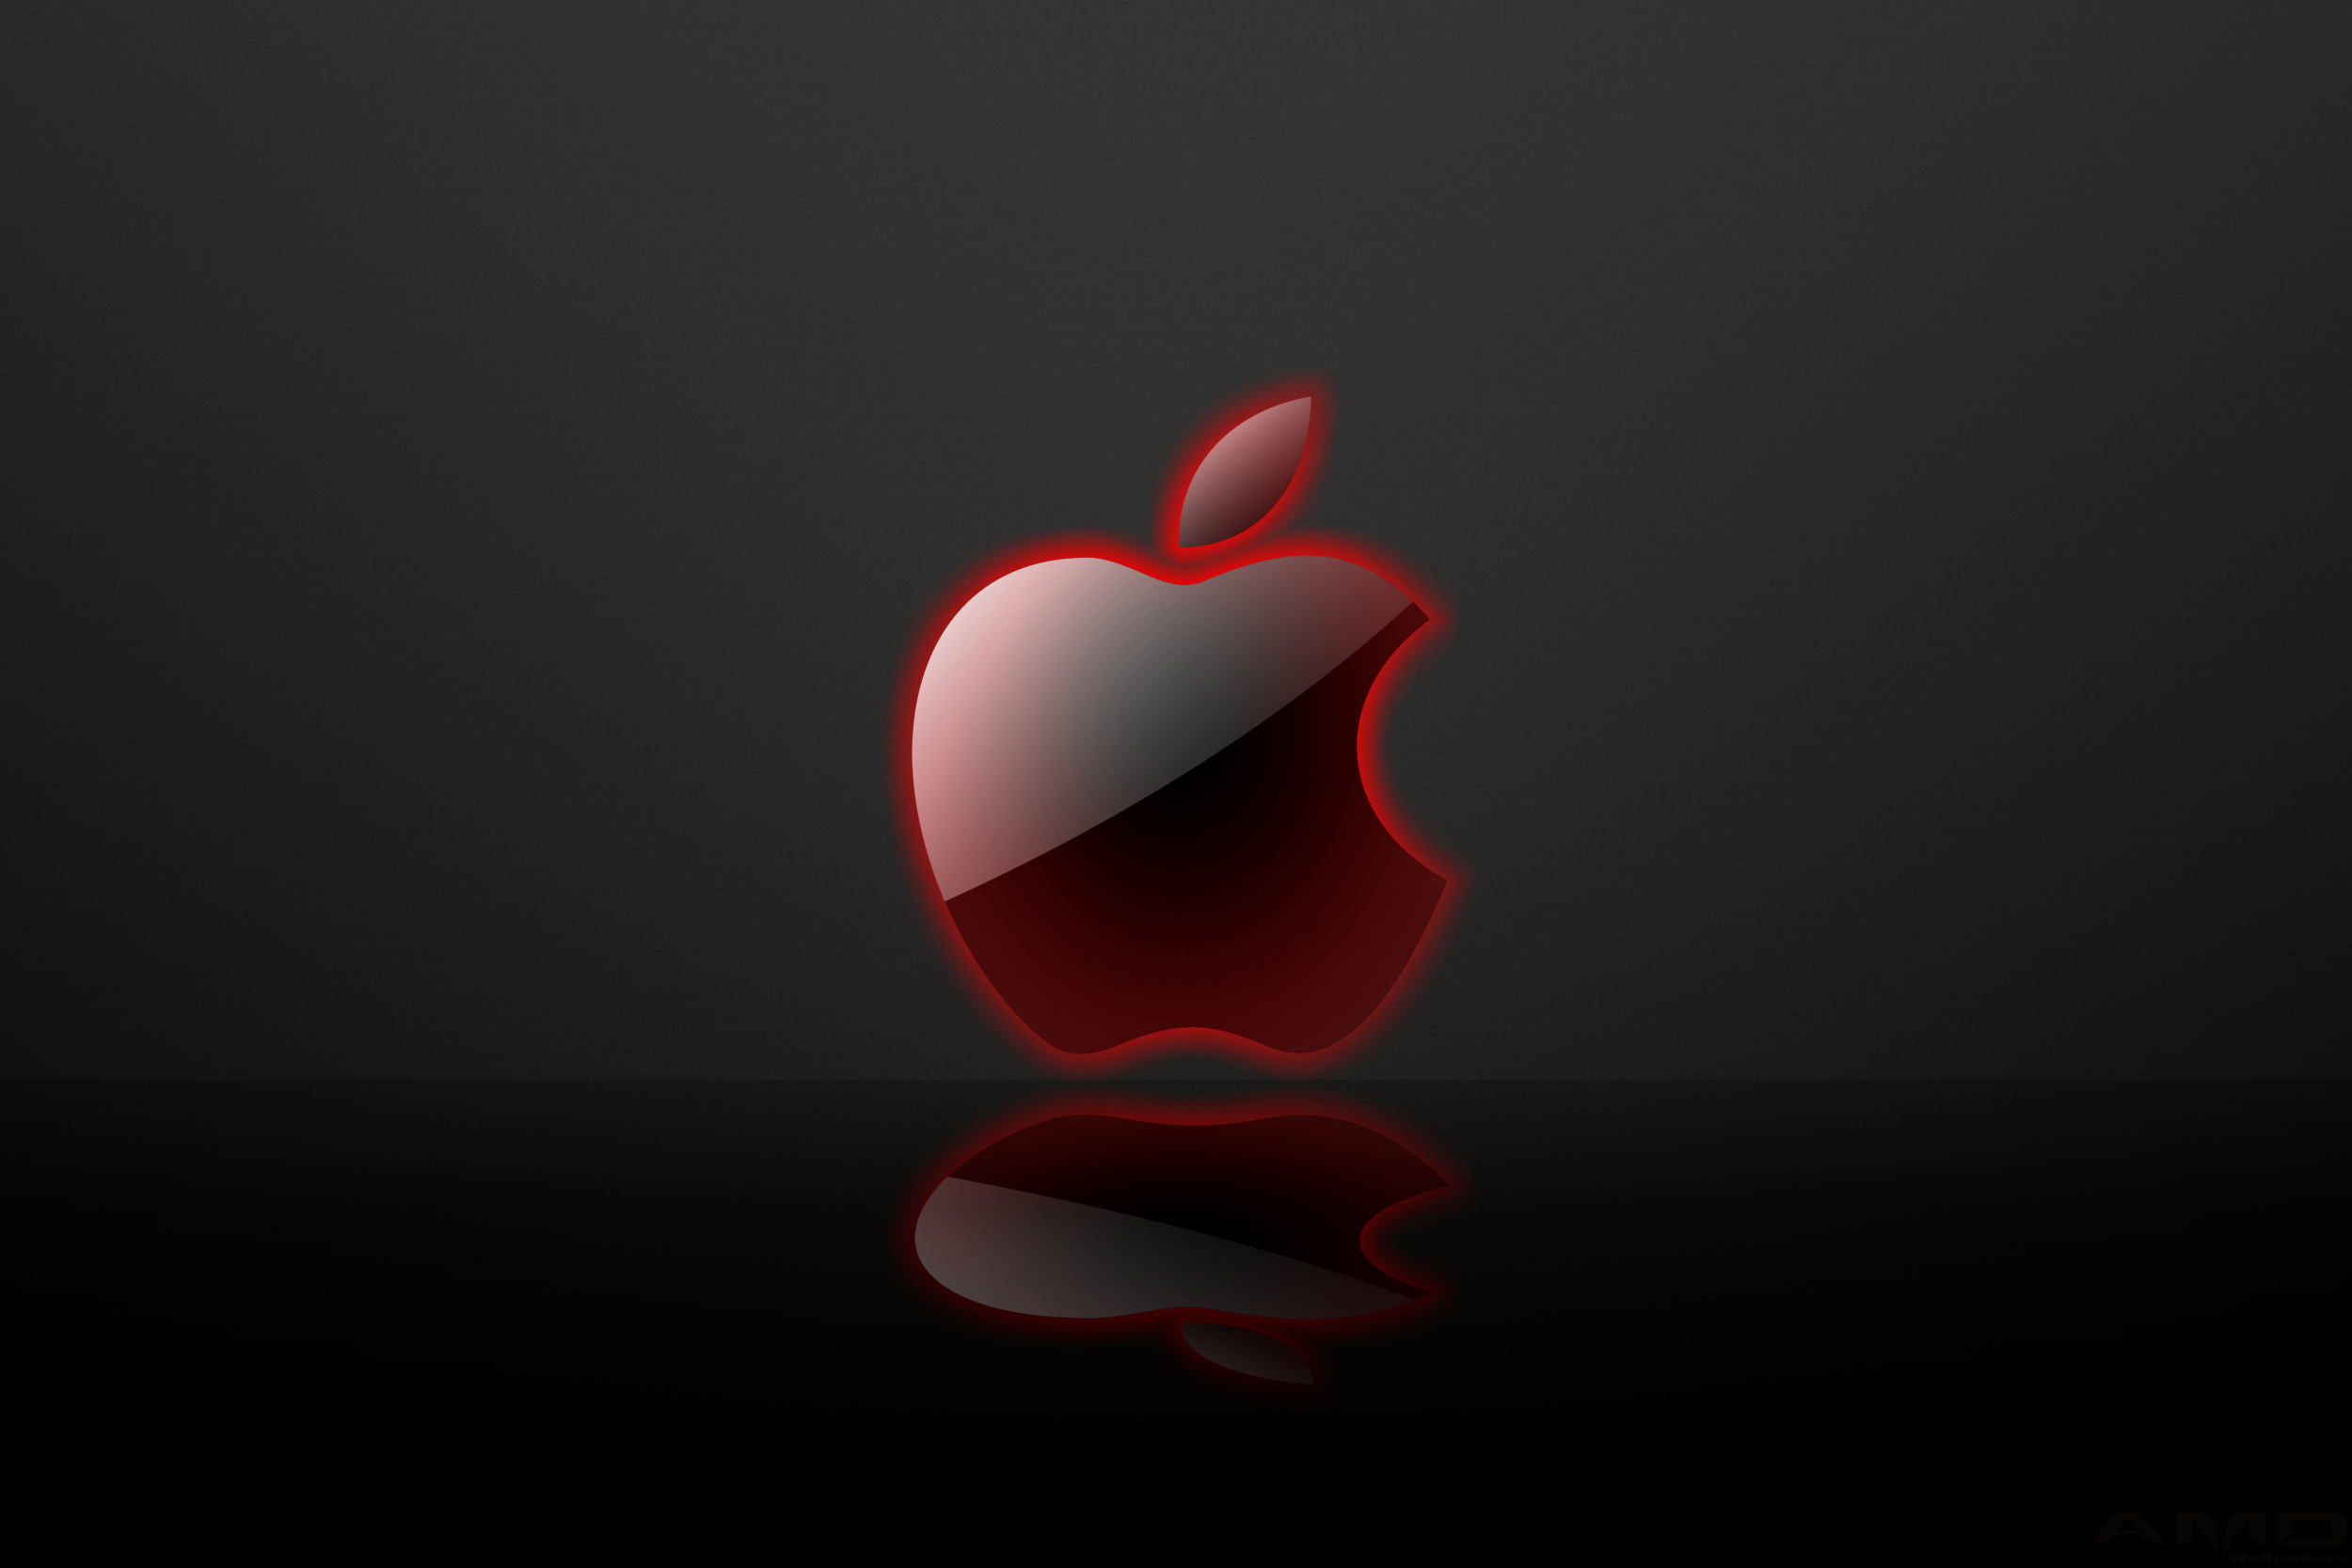 High res wallpapers that i made guru3d forums - Red apple wallpaper ...